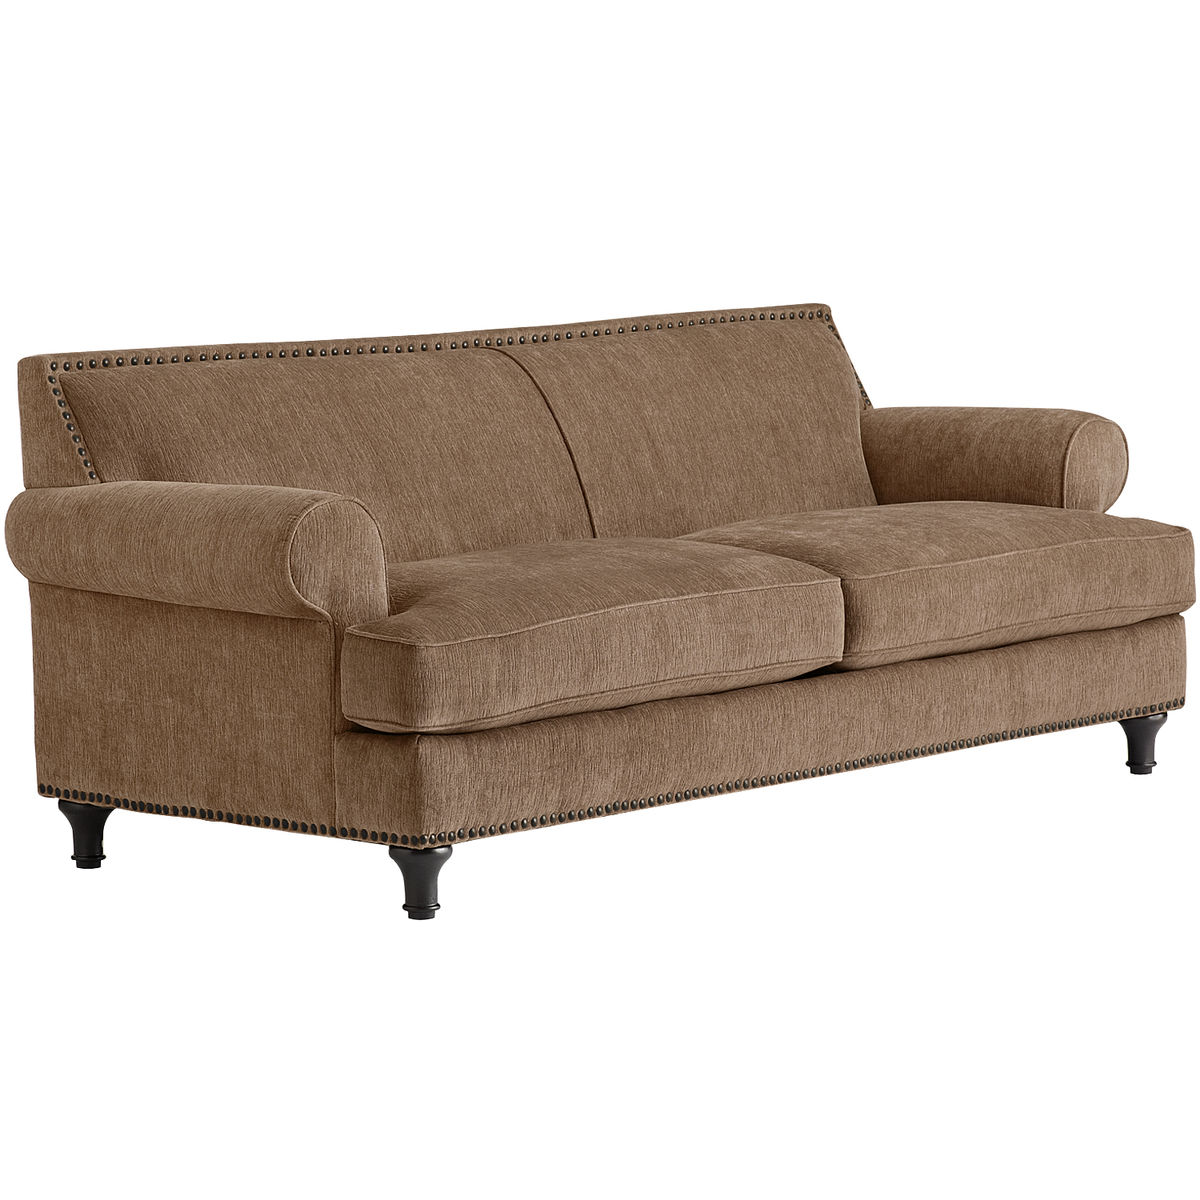 SFM00003 imported Loveseat Sofa furniture china